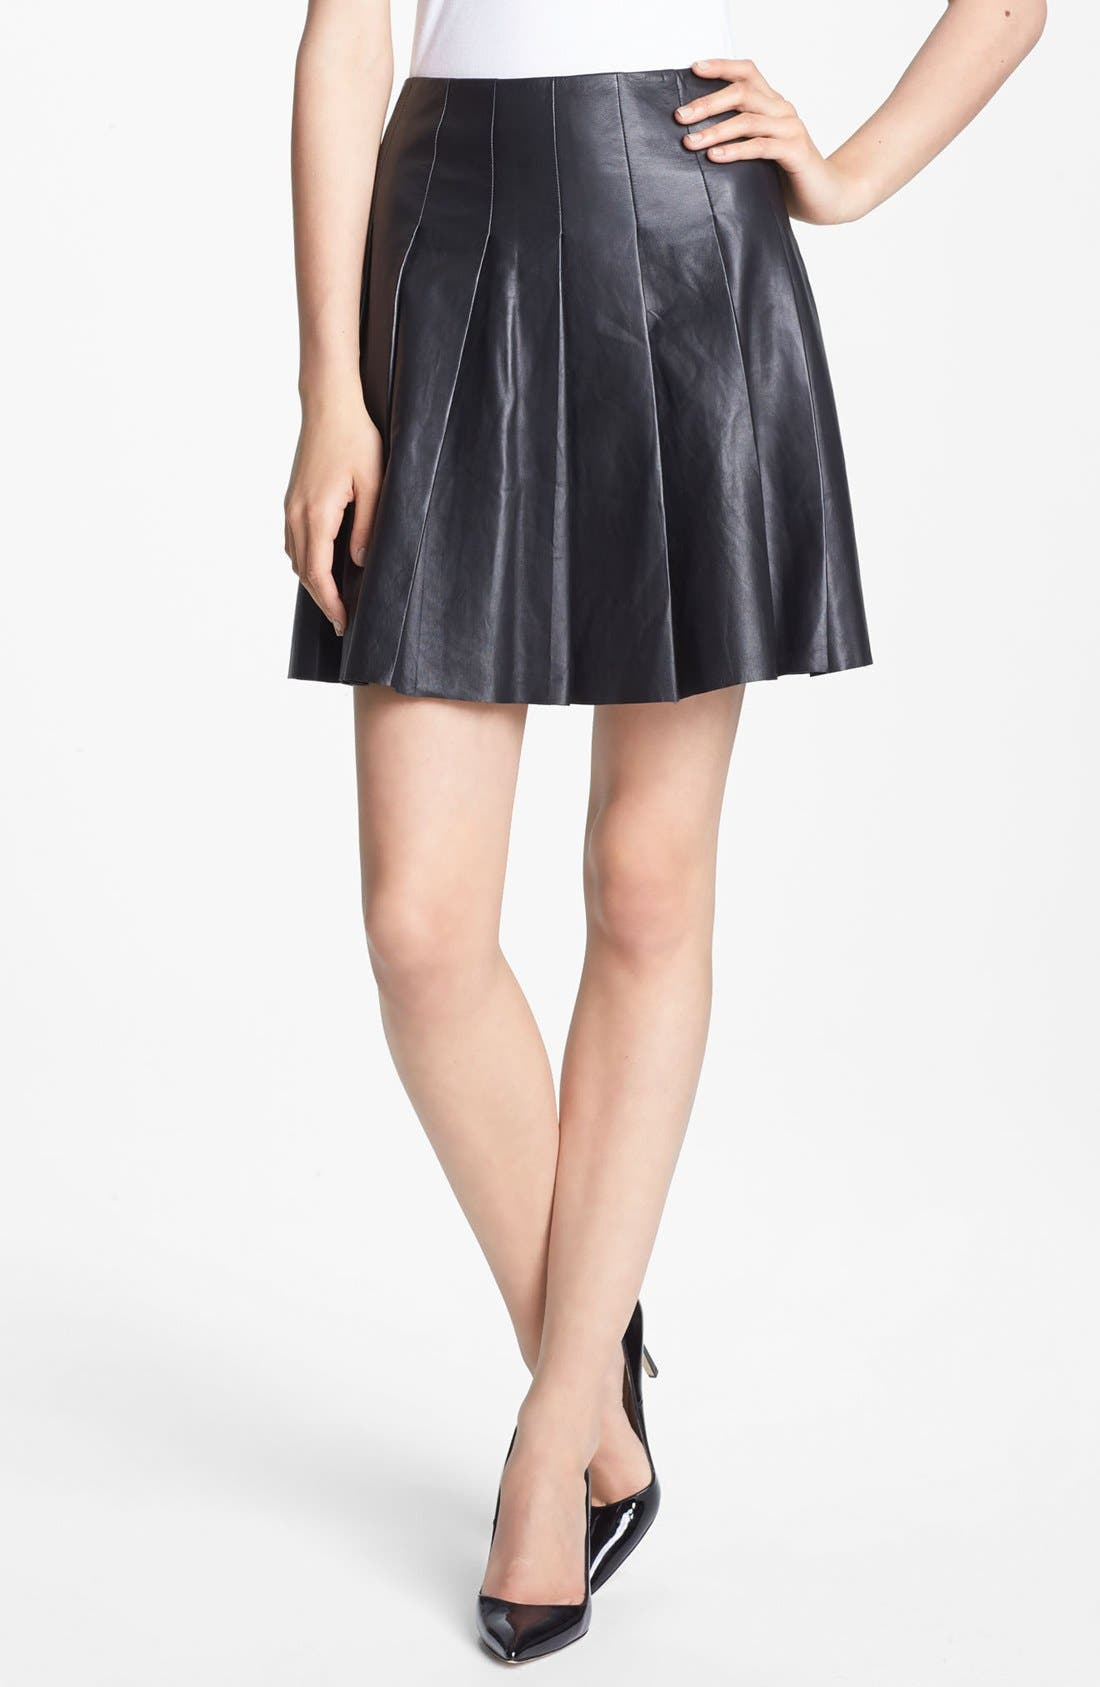 Alternate Image 1 Selected - Miss Wu Pleated Leather Skirt (Nordstrom Exclusive)